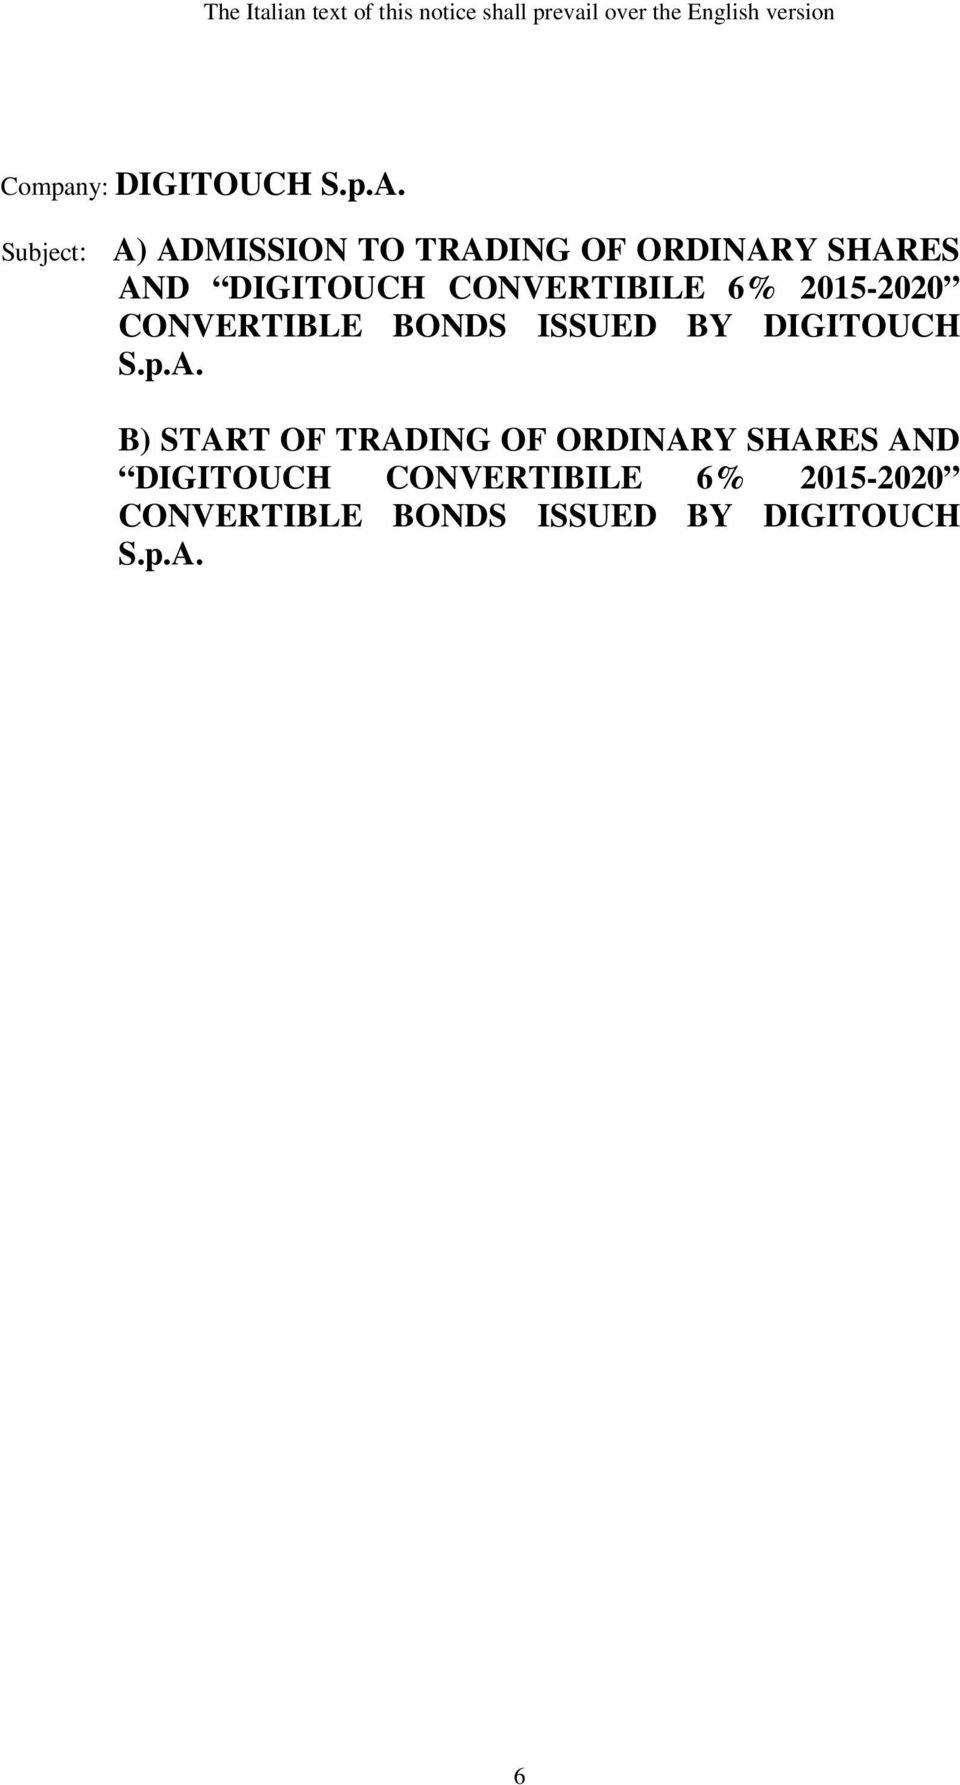 Subject: A) ADMISSION TO TRADING OF ORDINARY SHARES AND DIGITOUCH CONVERTIBILE 6%